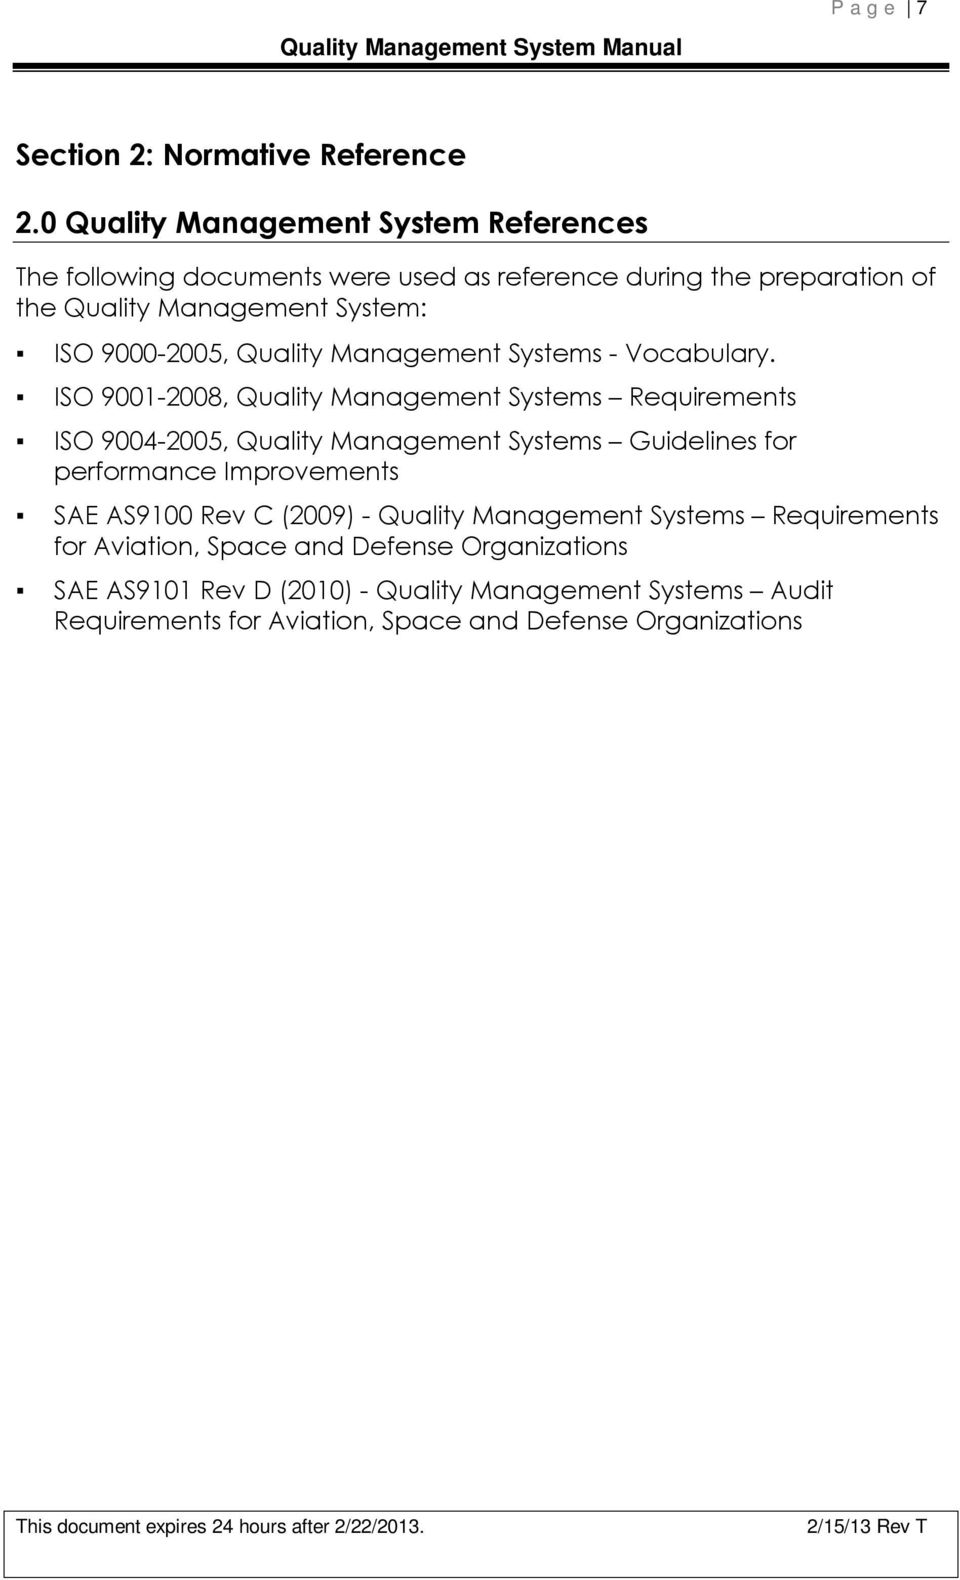 9000-2005, Quality Management Systems - Vocabulary.